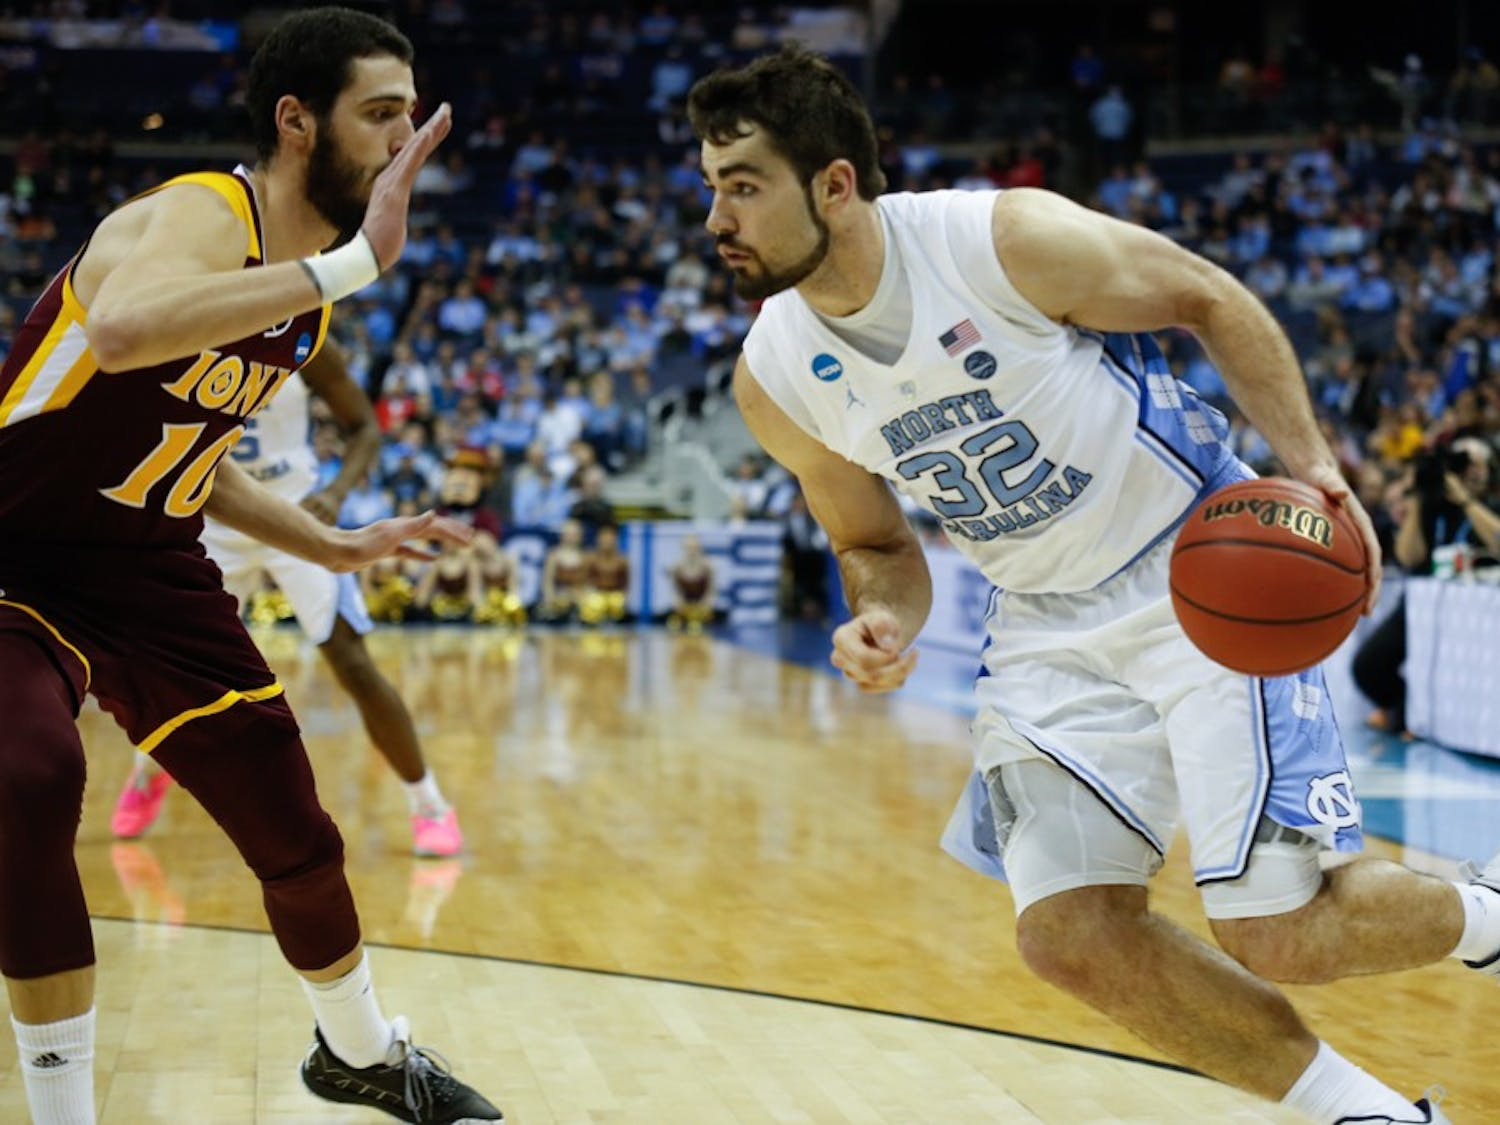 Senior forward Luke Maye (32) drives past Iona player on Friday, March 22, 2019 during the first round of the NCAA Championship at Nationwide Arena in Columbus, Ohio.